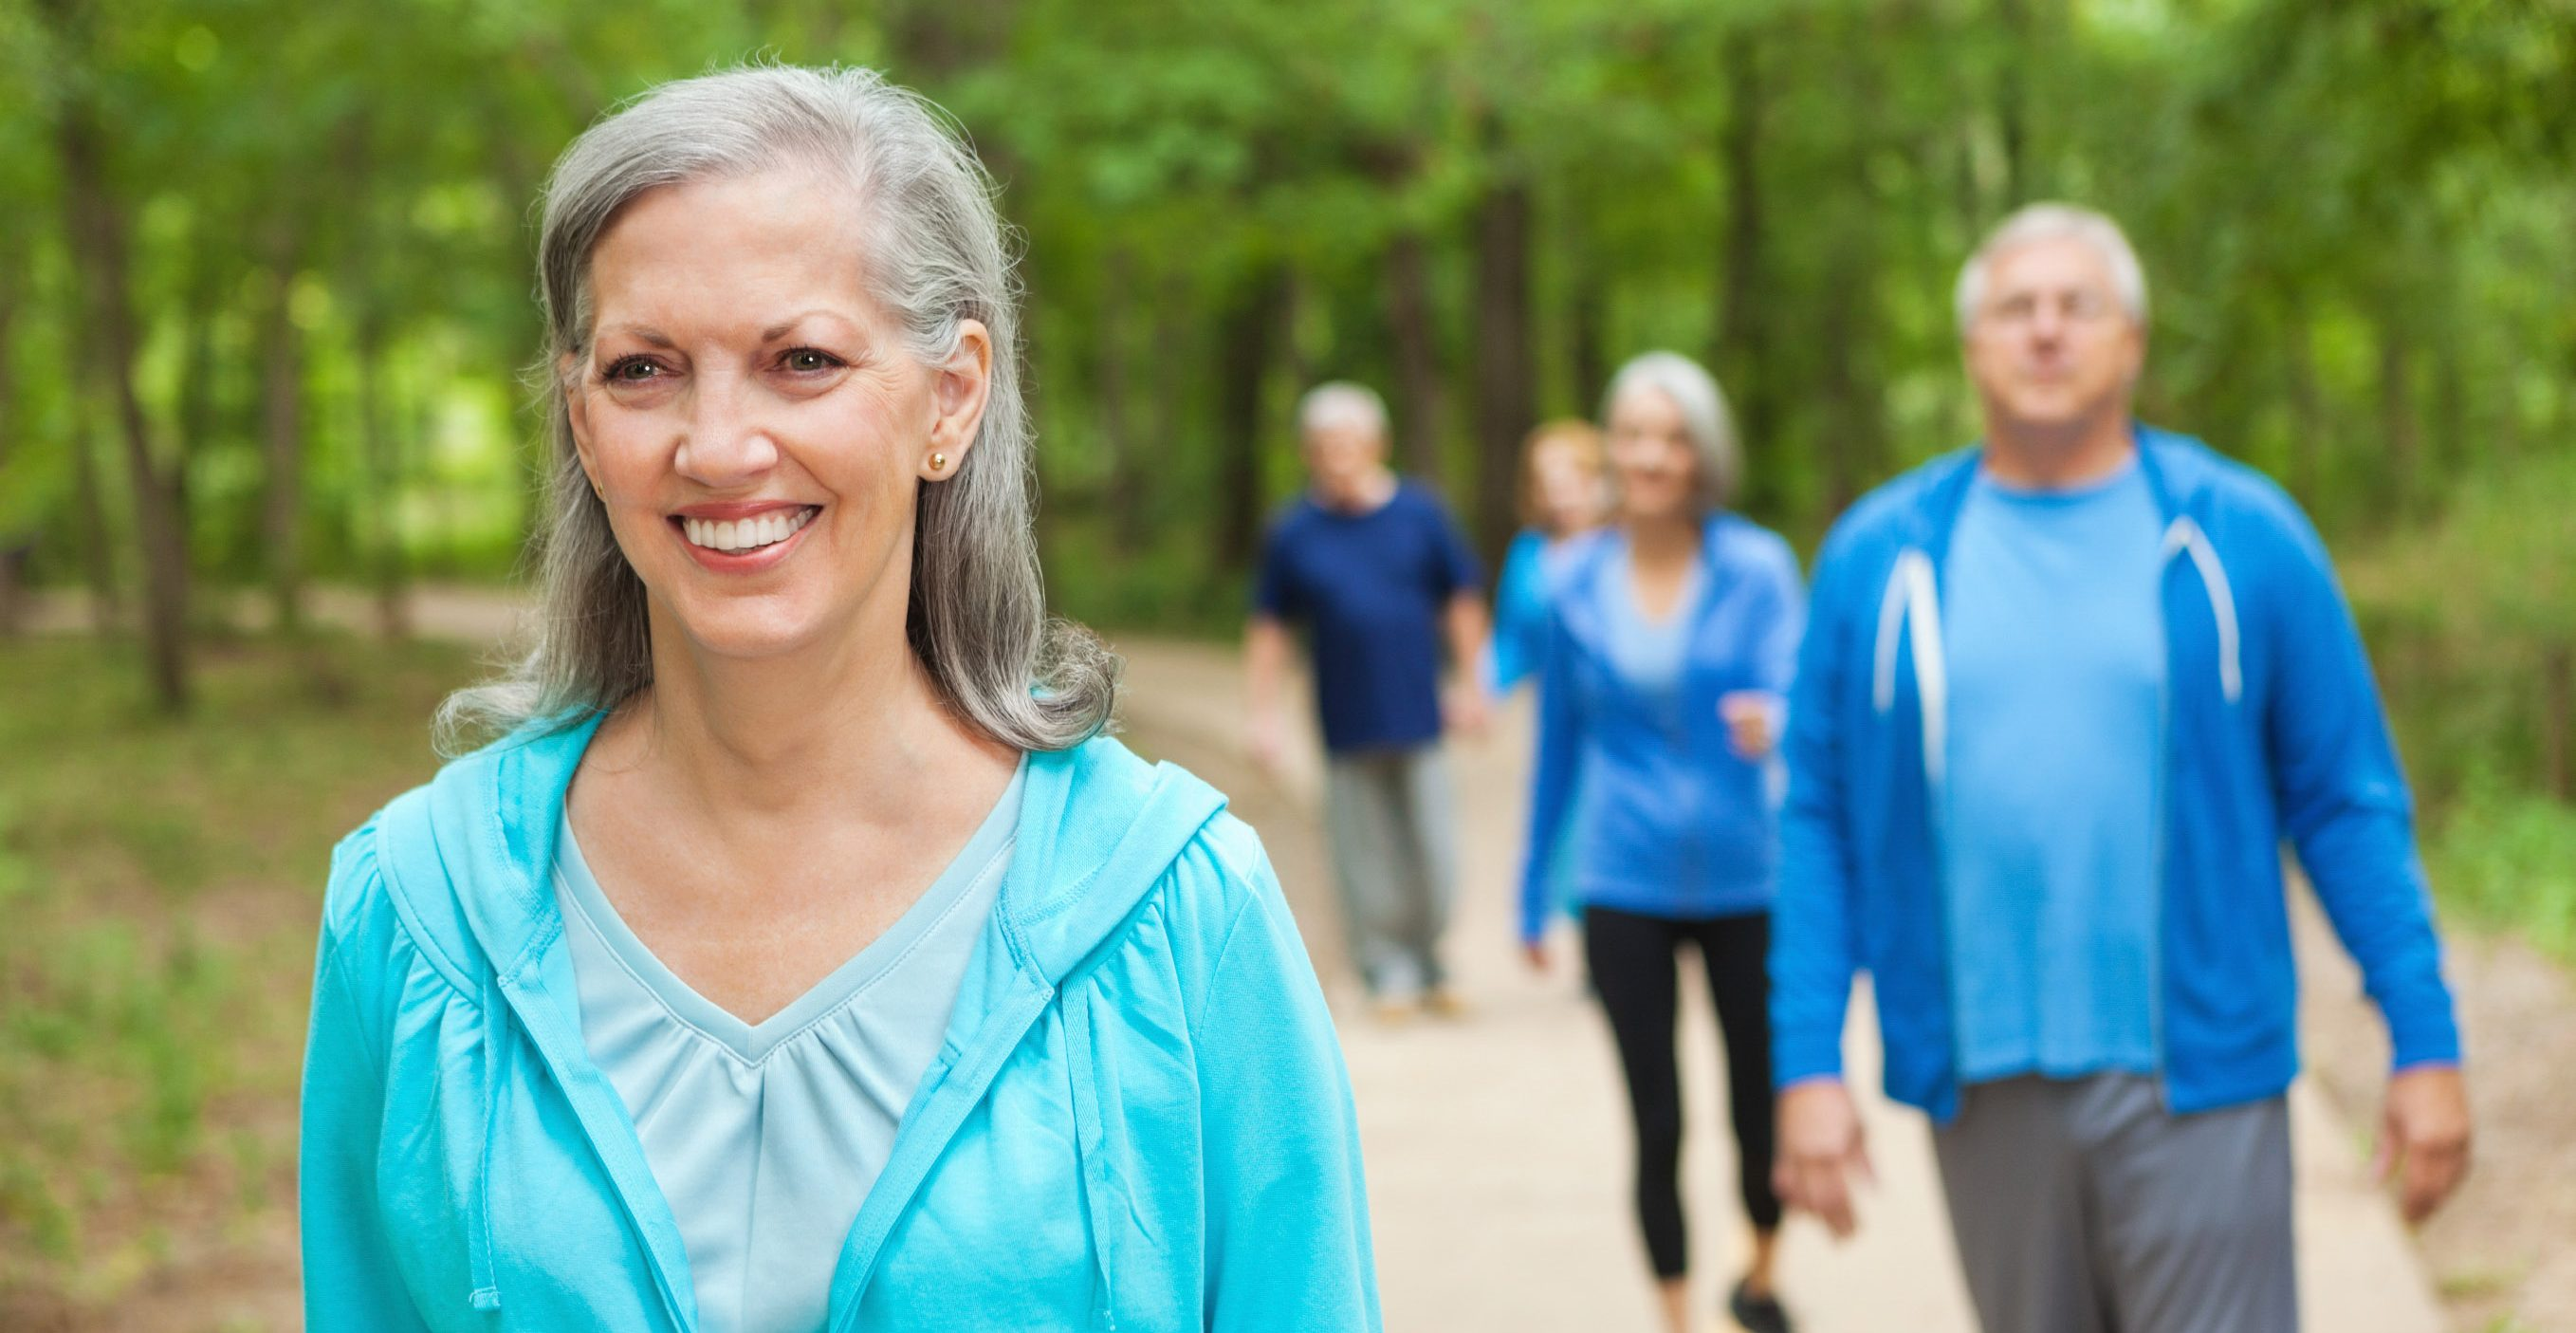 Walking groups for better health